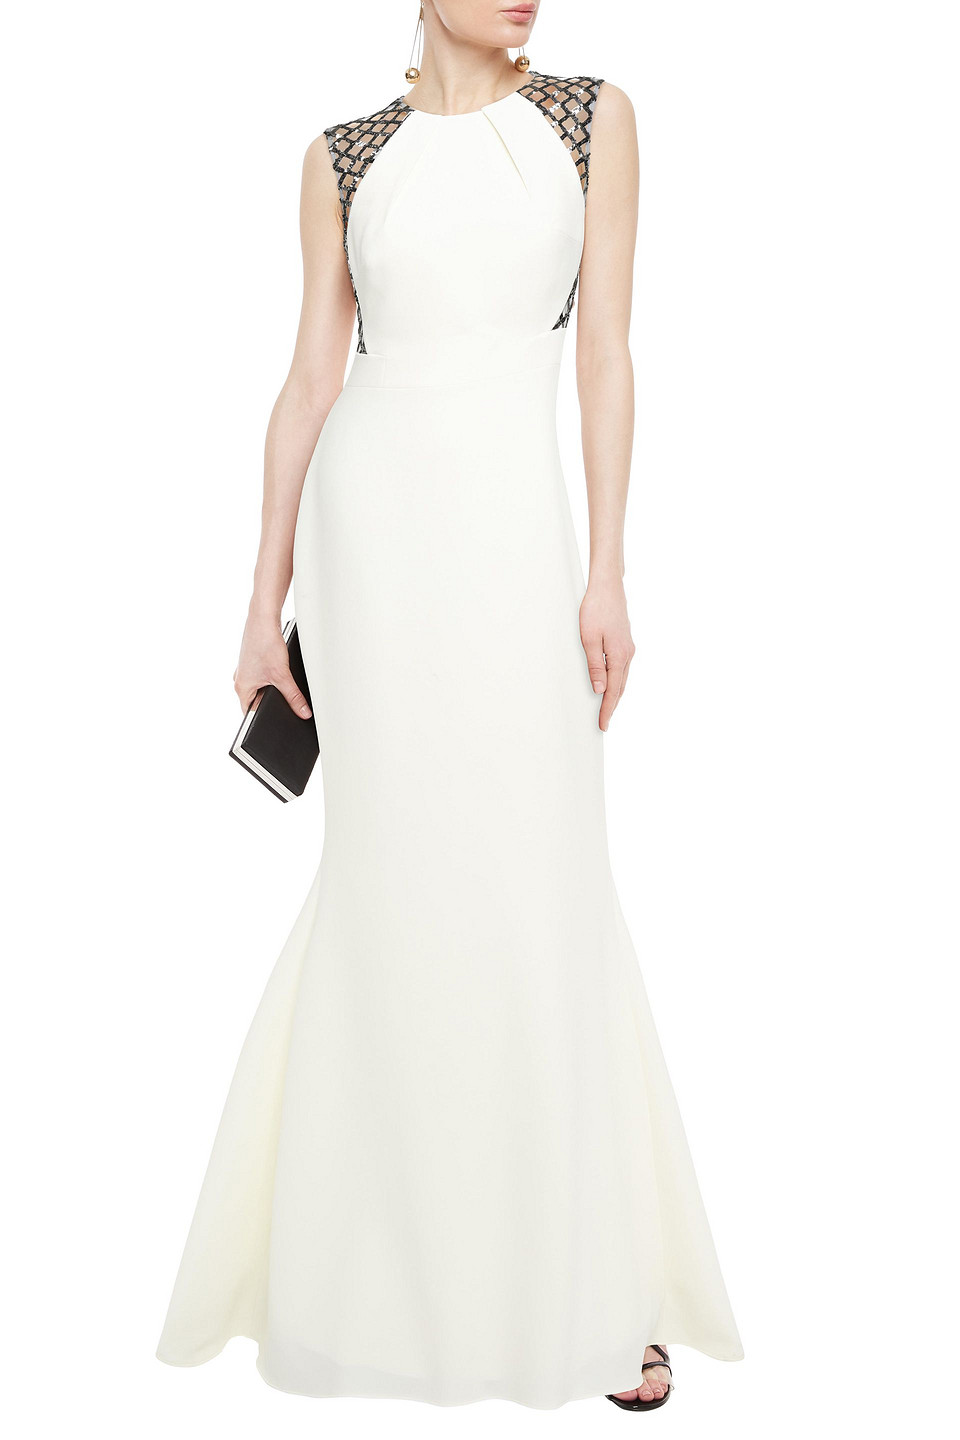 Safiyaa   Safiyaa Woman Cutout Embellished Stretch-tulle And Crepe Gown Ivory   Clouty